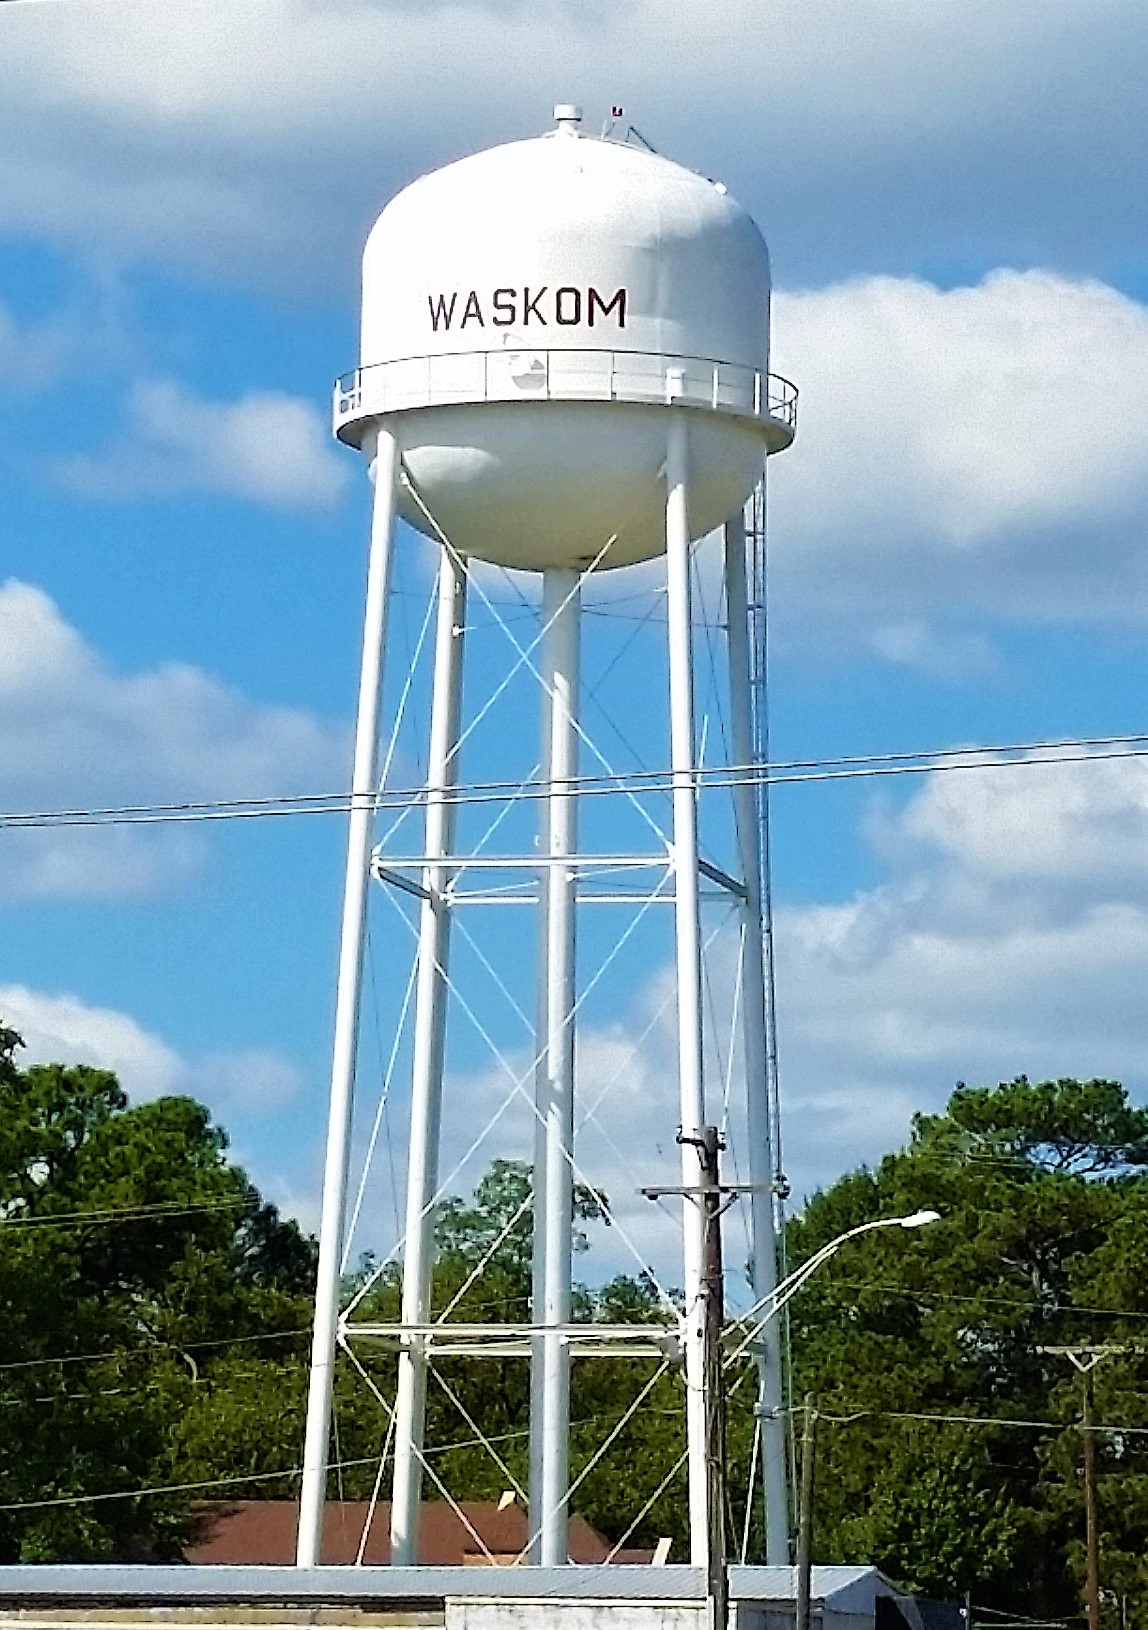 Water Dept City Of Waskom Texas Official Site